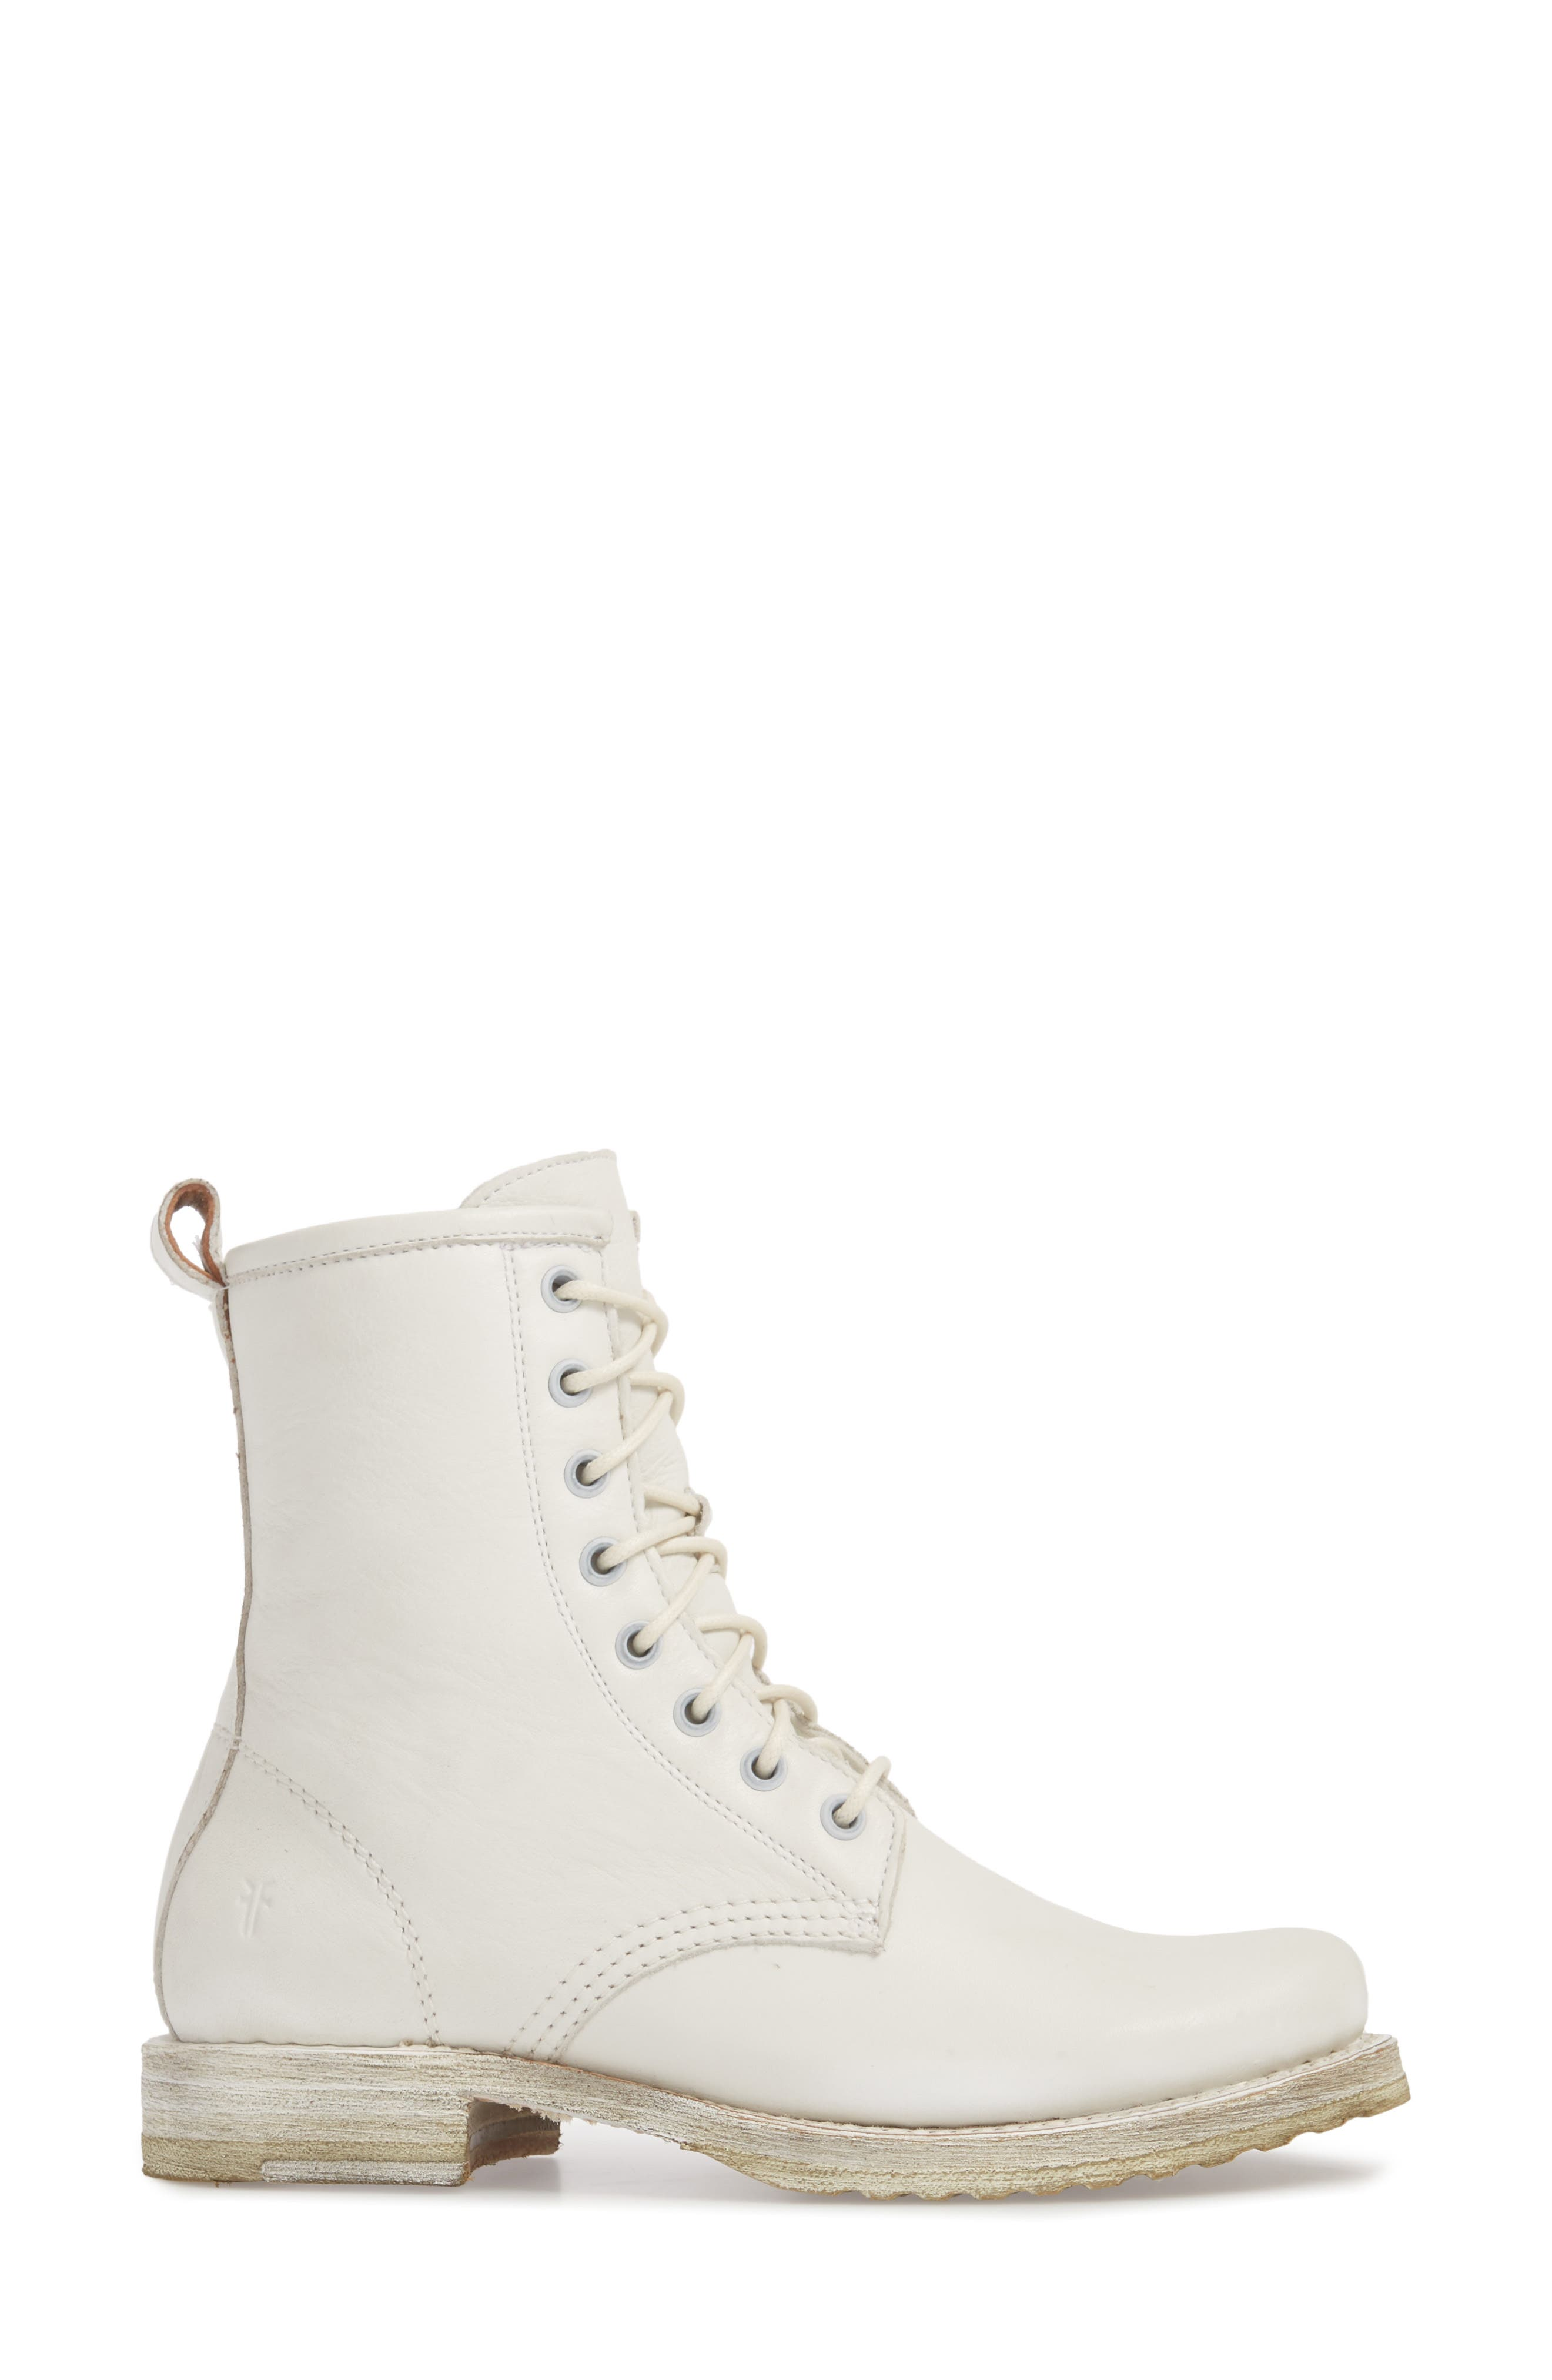 FRYE, Veronica Combat Boot, Alternate thumbnail 3, color, WHITE LEATHER